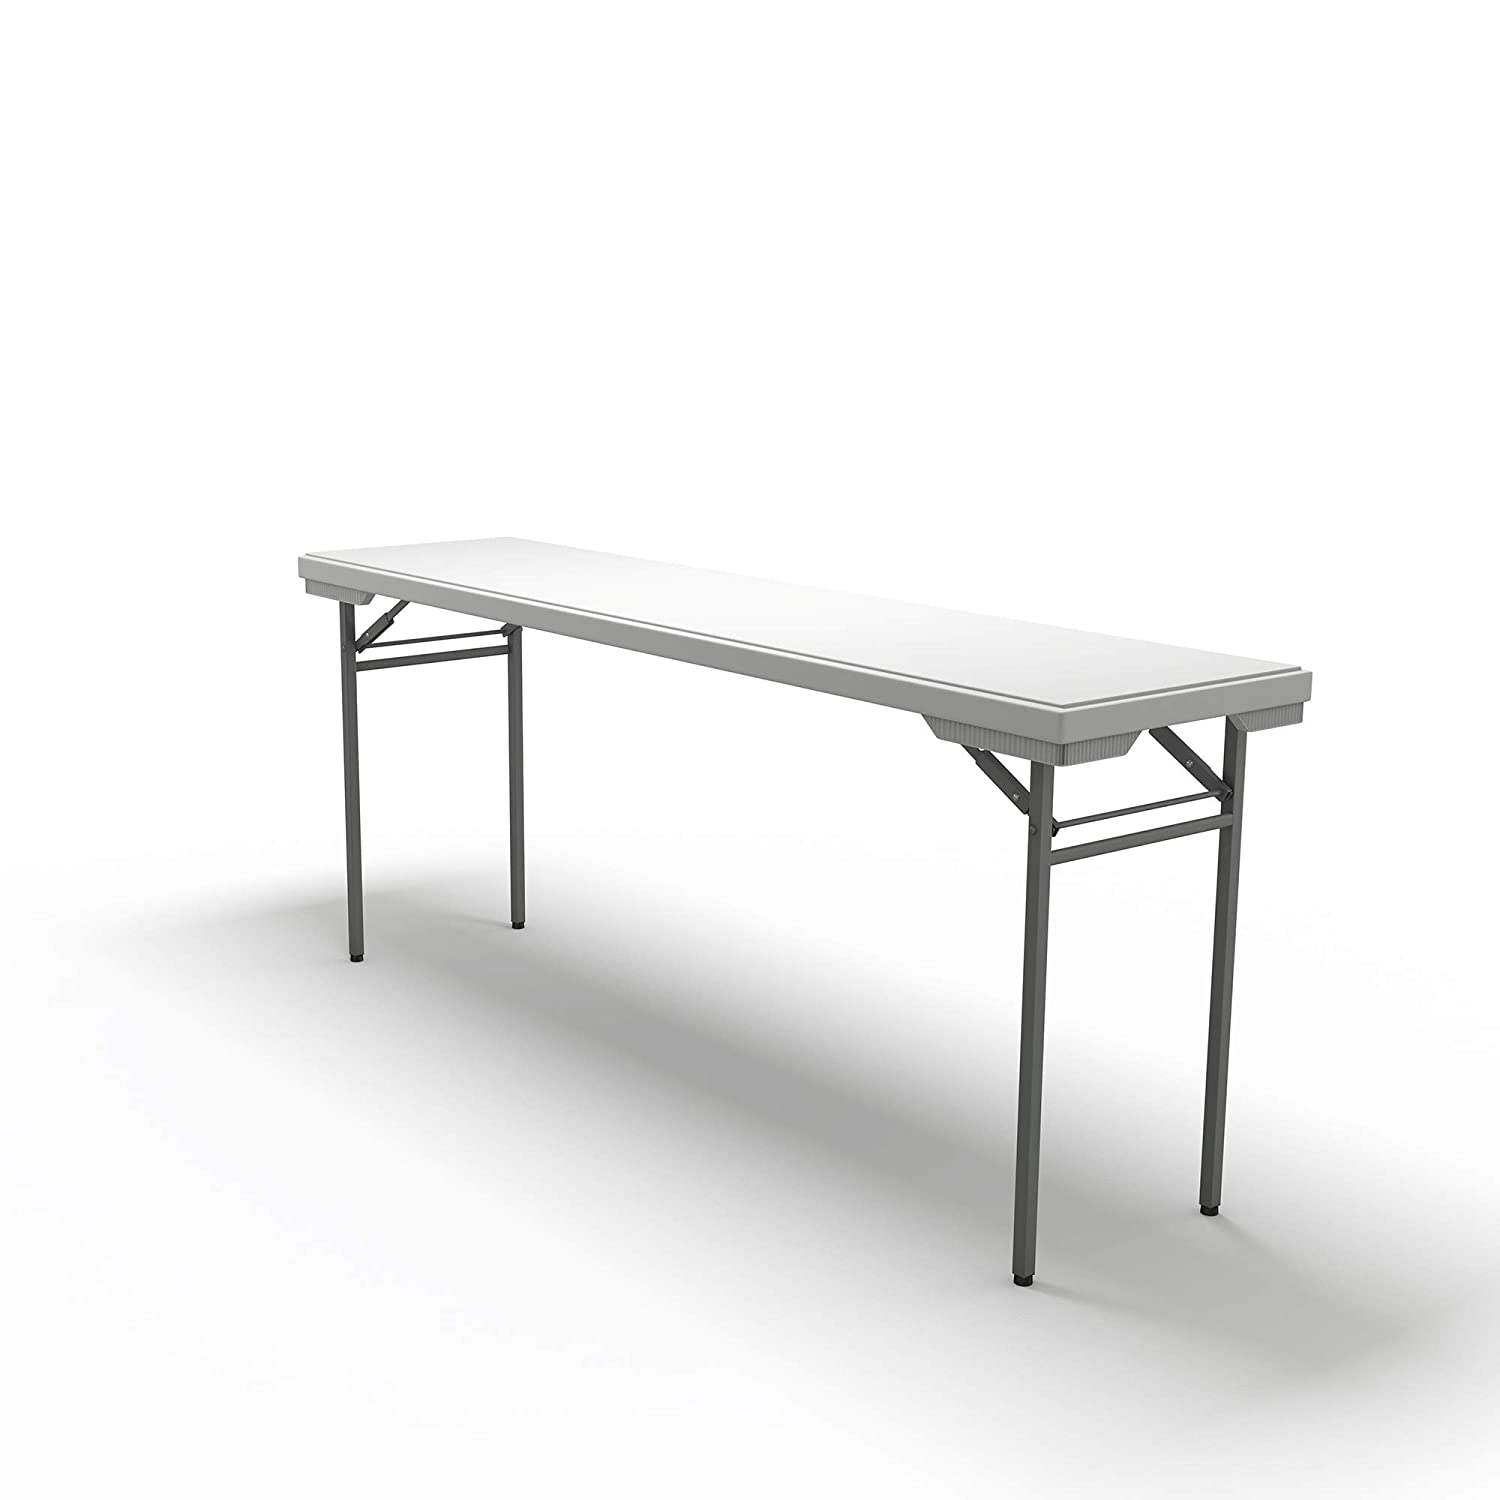 Mayline 772448DGWT Event SeriesRectangle Table 48W x 24D White Top//Dark Gray Base